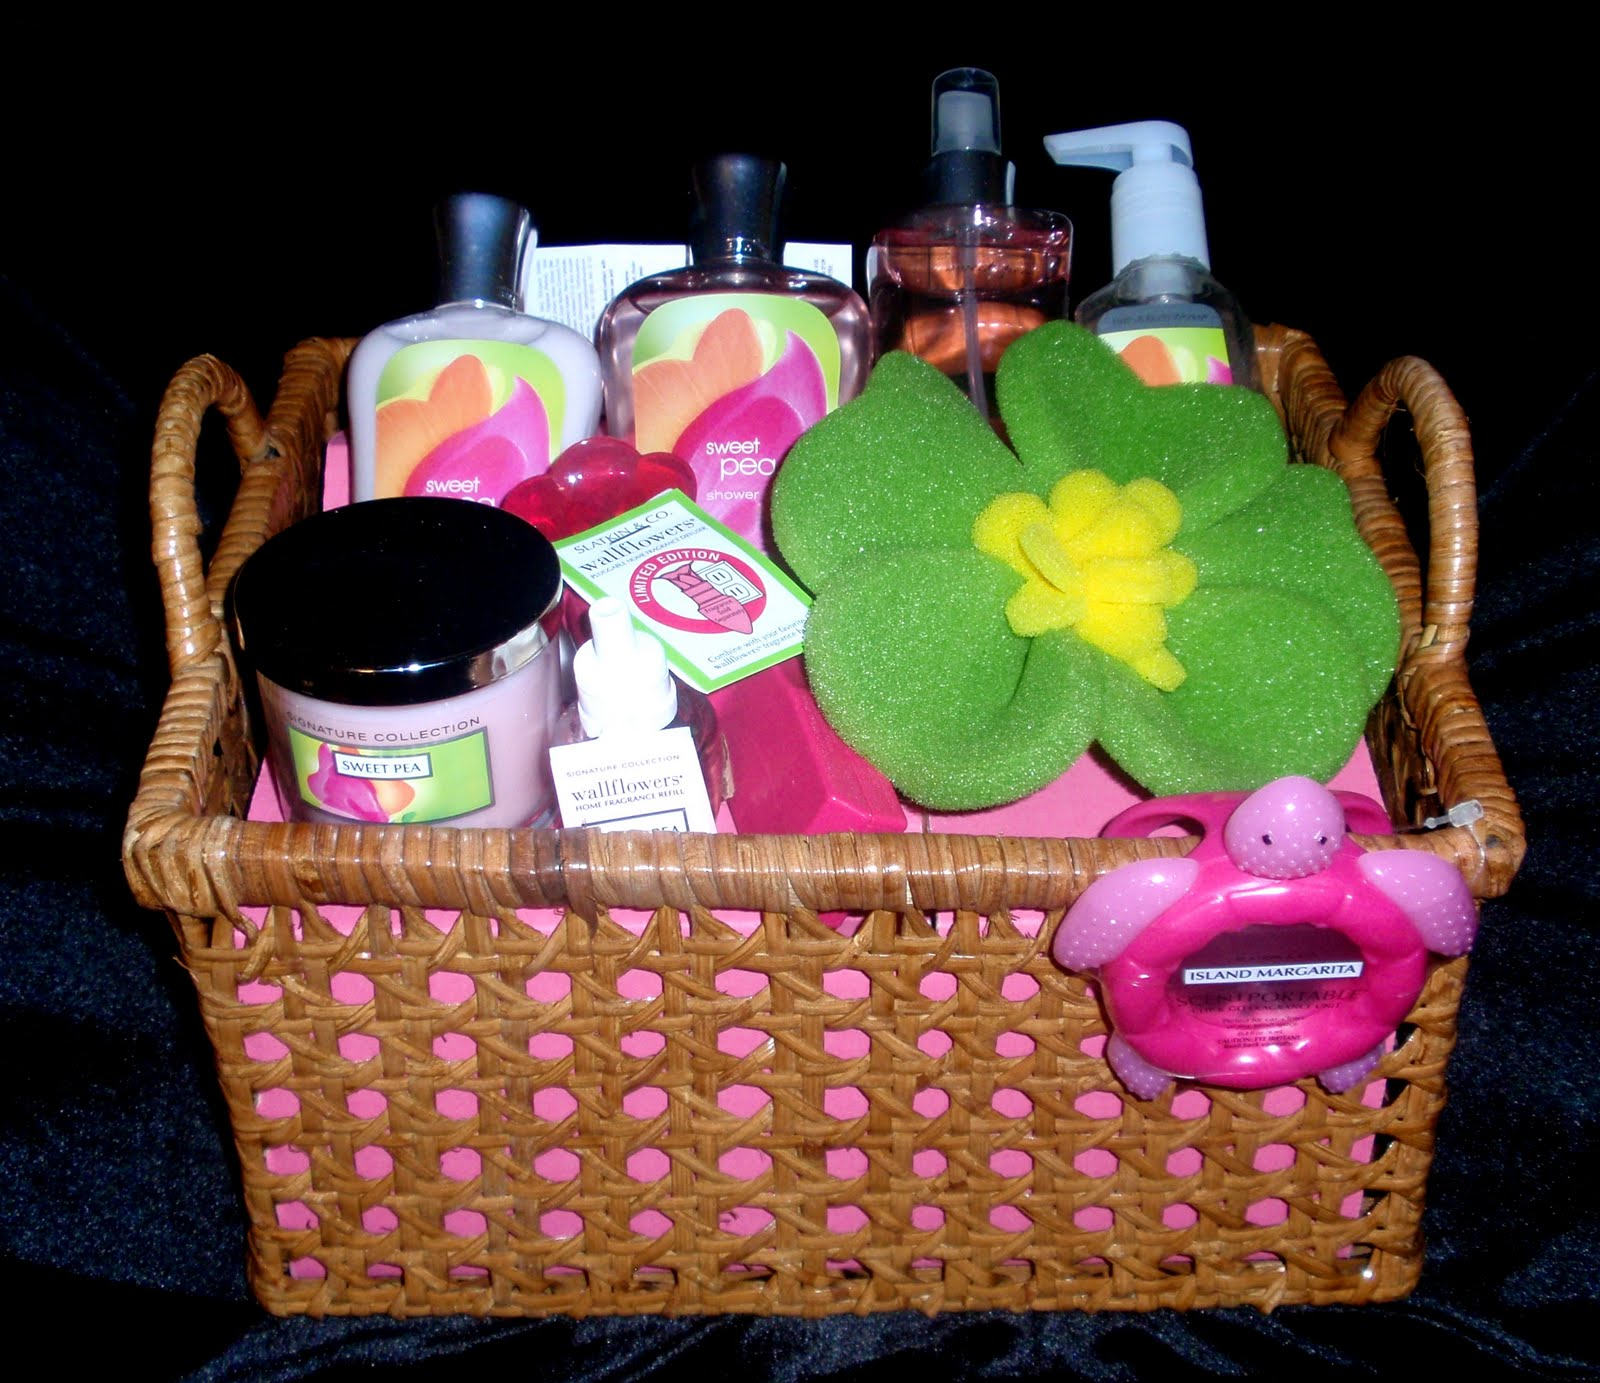 Alexander's Auction: Sweet Pea Gift Basket from Bath and Body Works